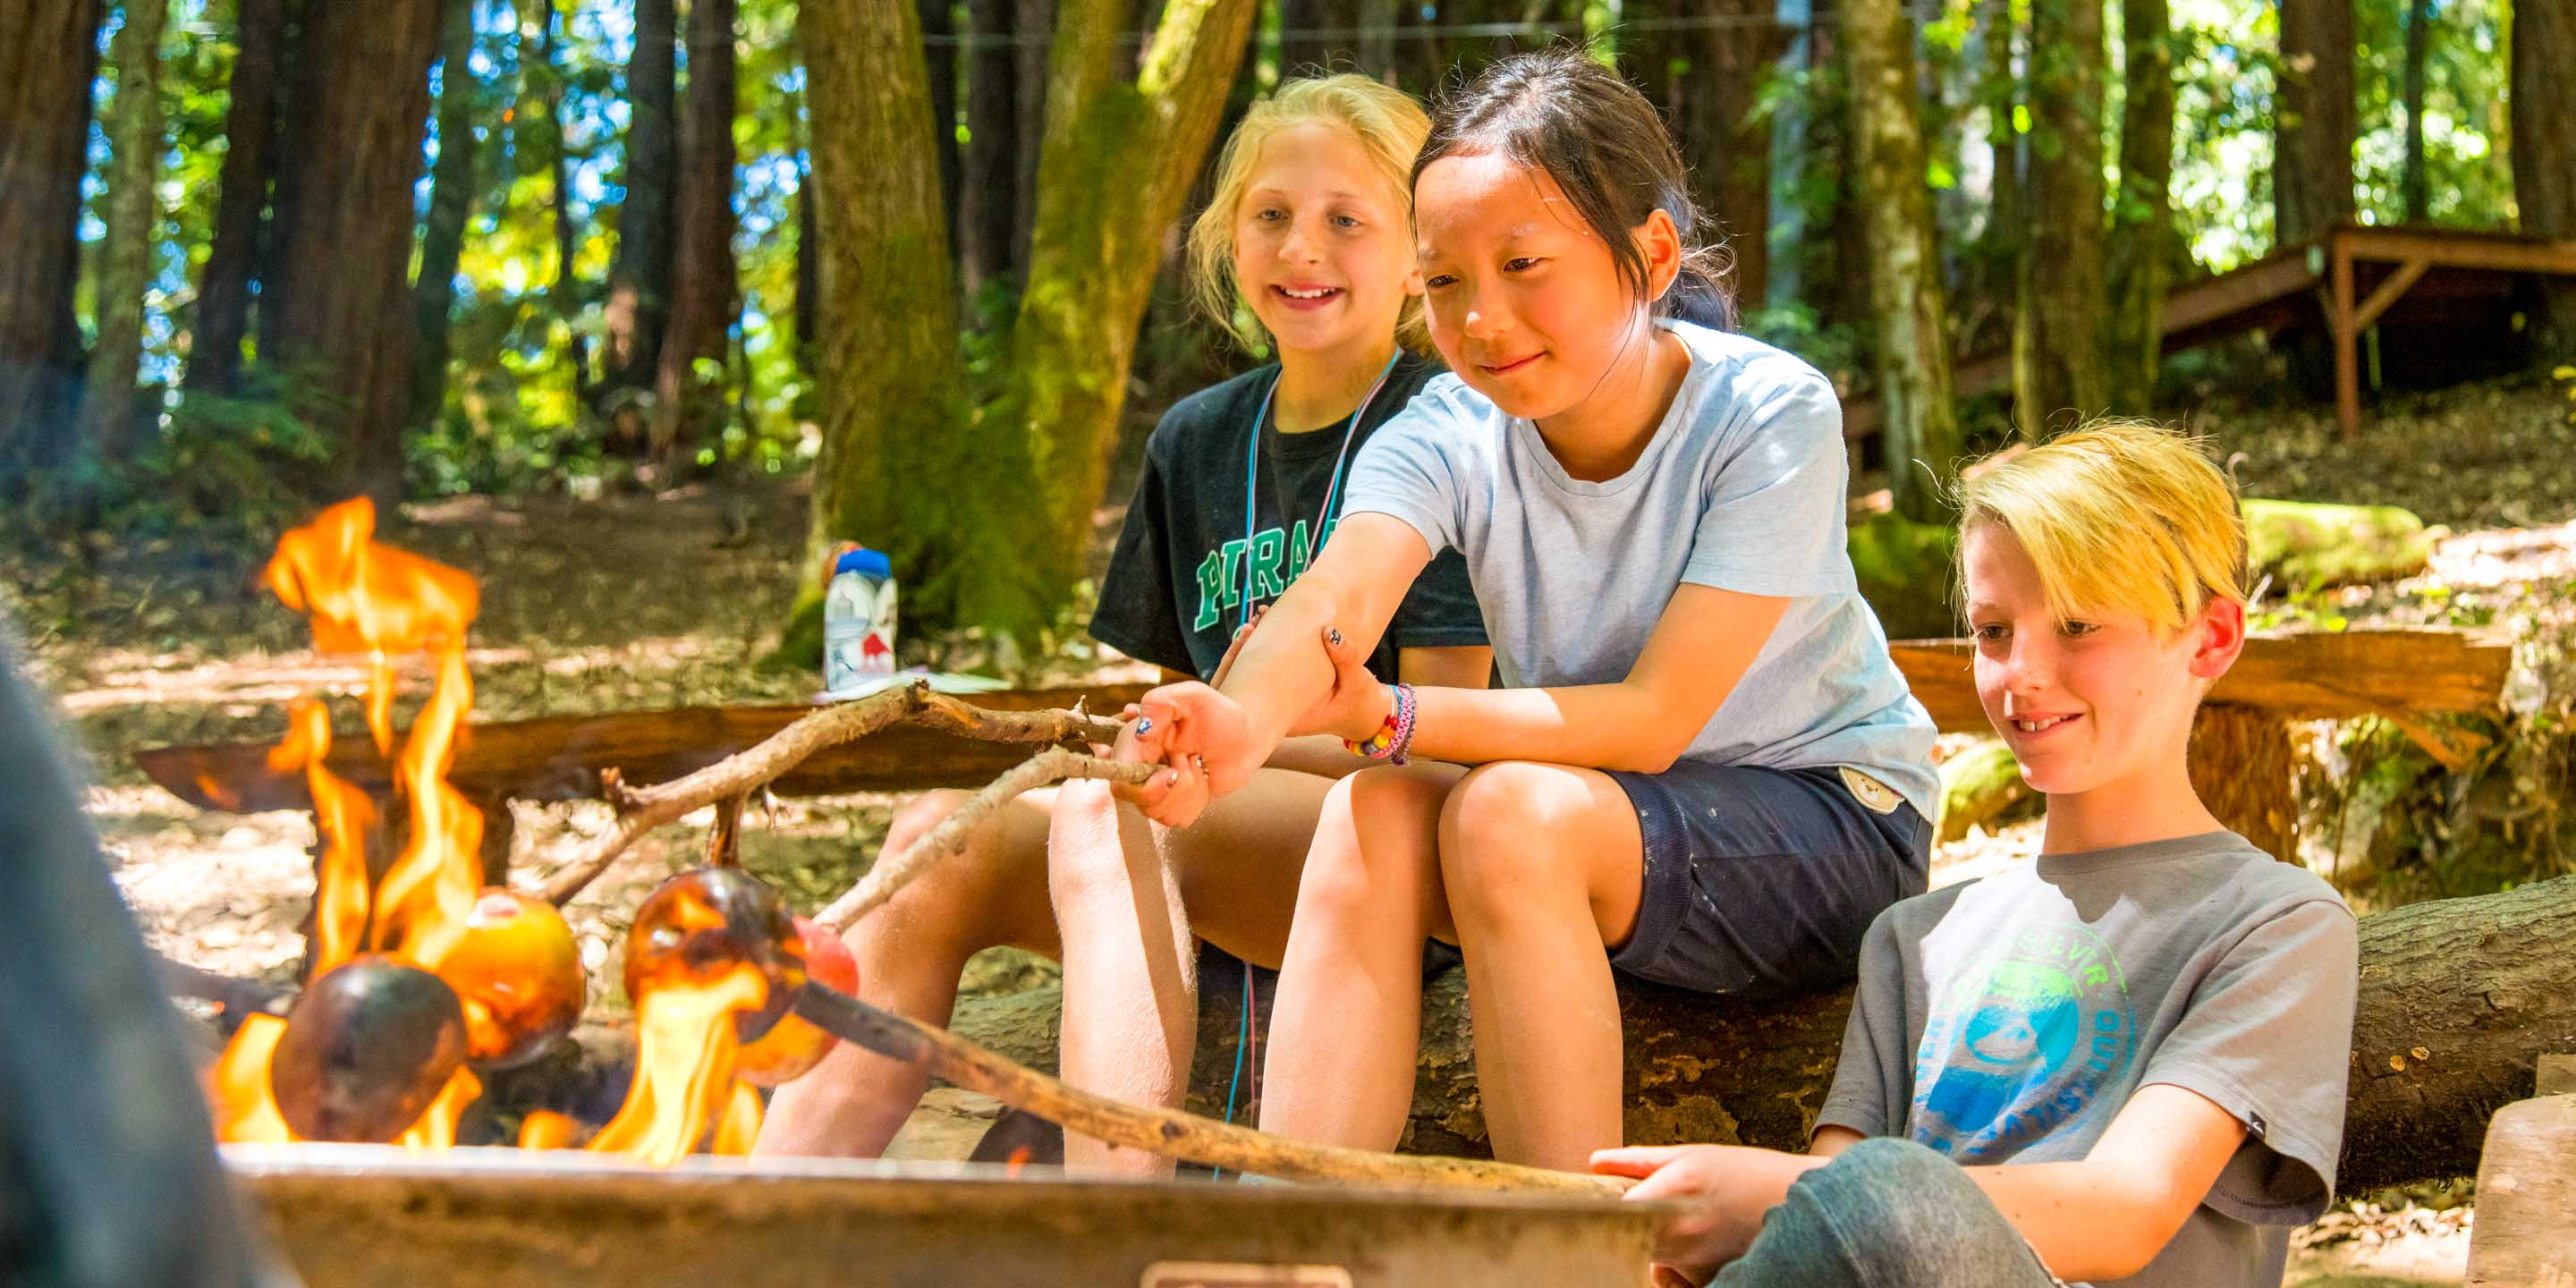 Campers roast apples over outdoor fire